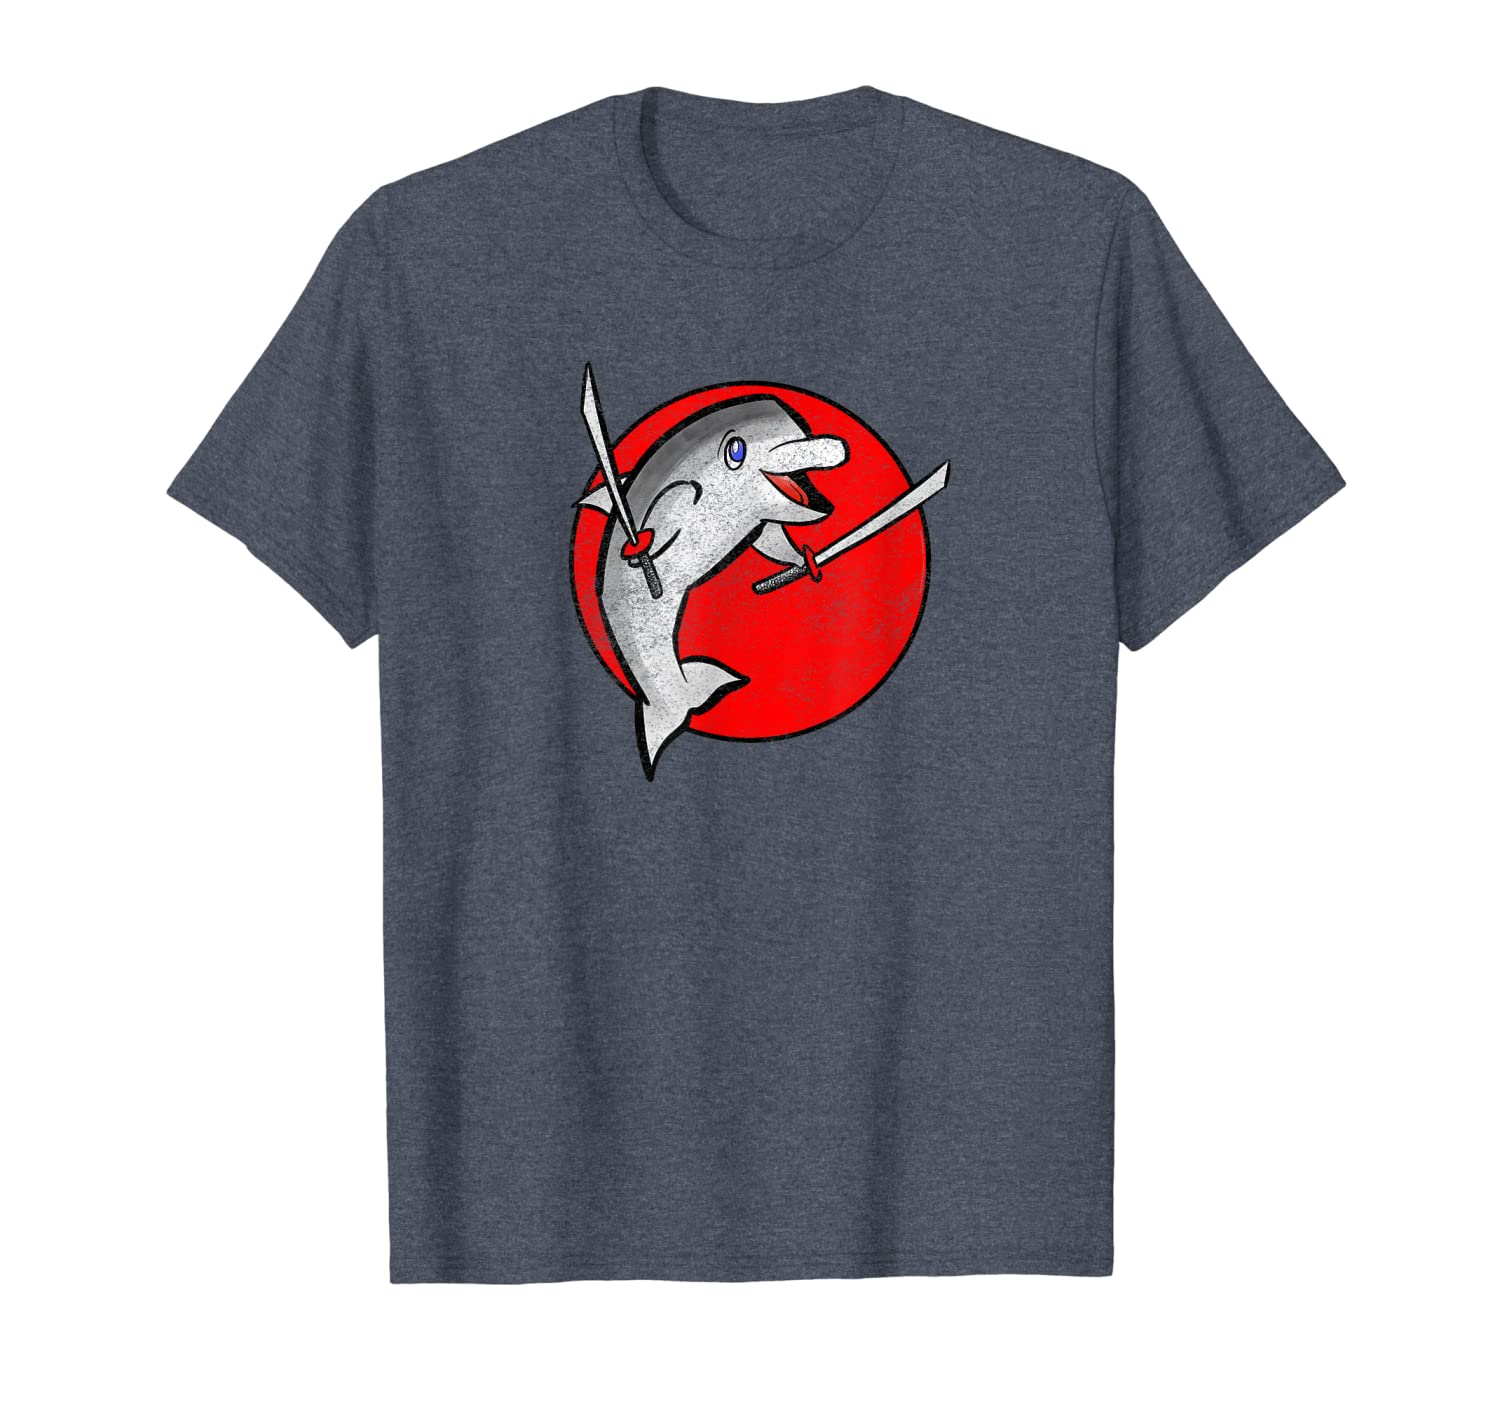 Amazon.com: Retro Ninja Dolphin Design by Turbo Volcano T ...